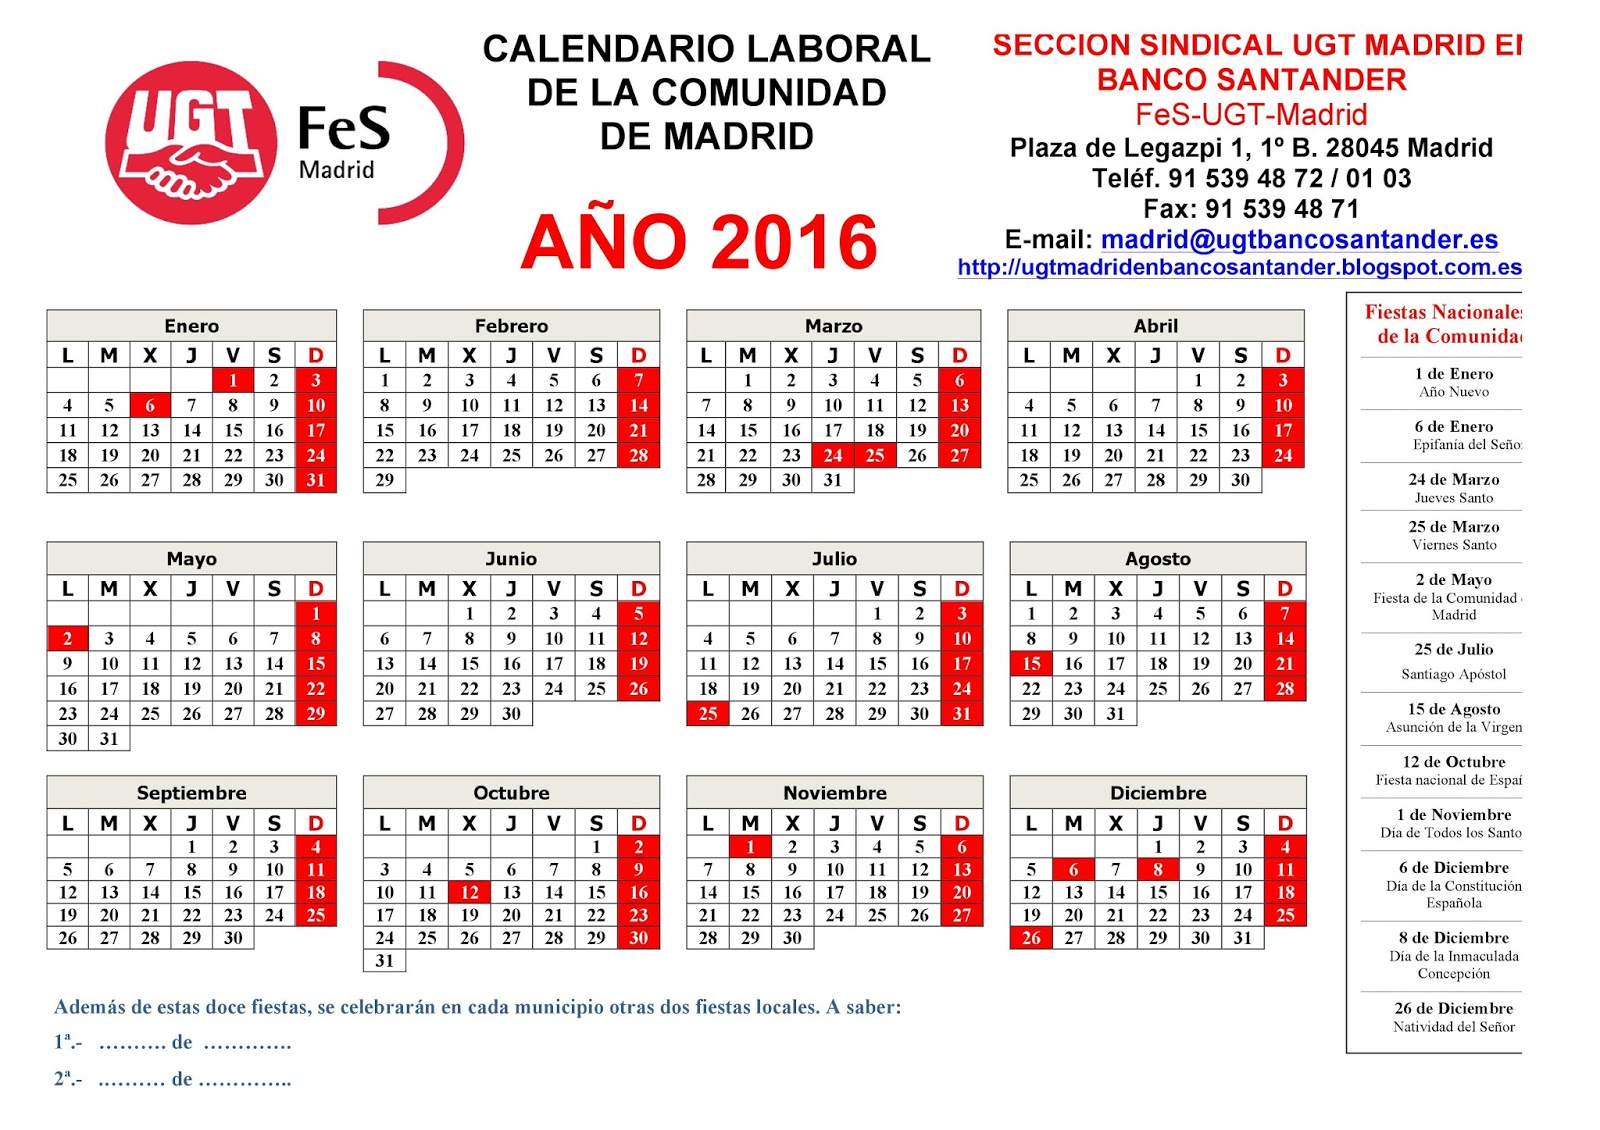 Secci n sindical de ugt madrid en banco santander for Calendario eventos madrid